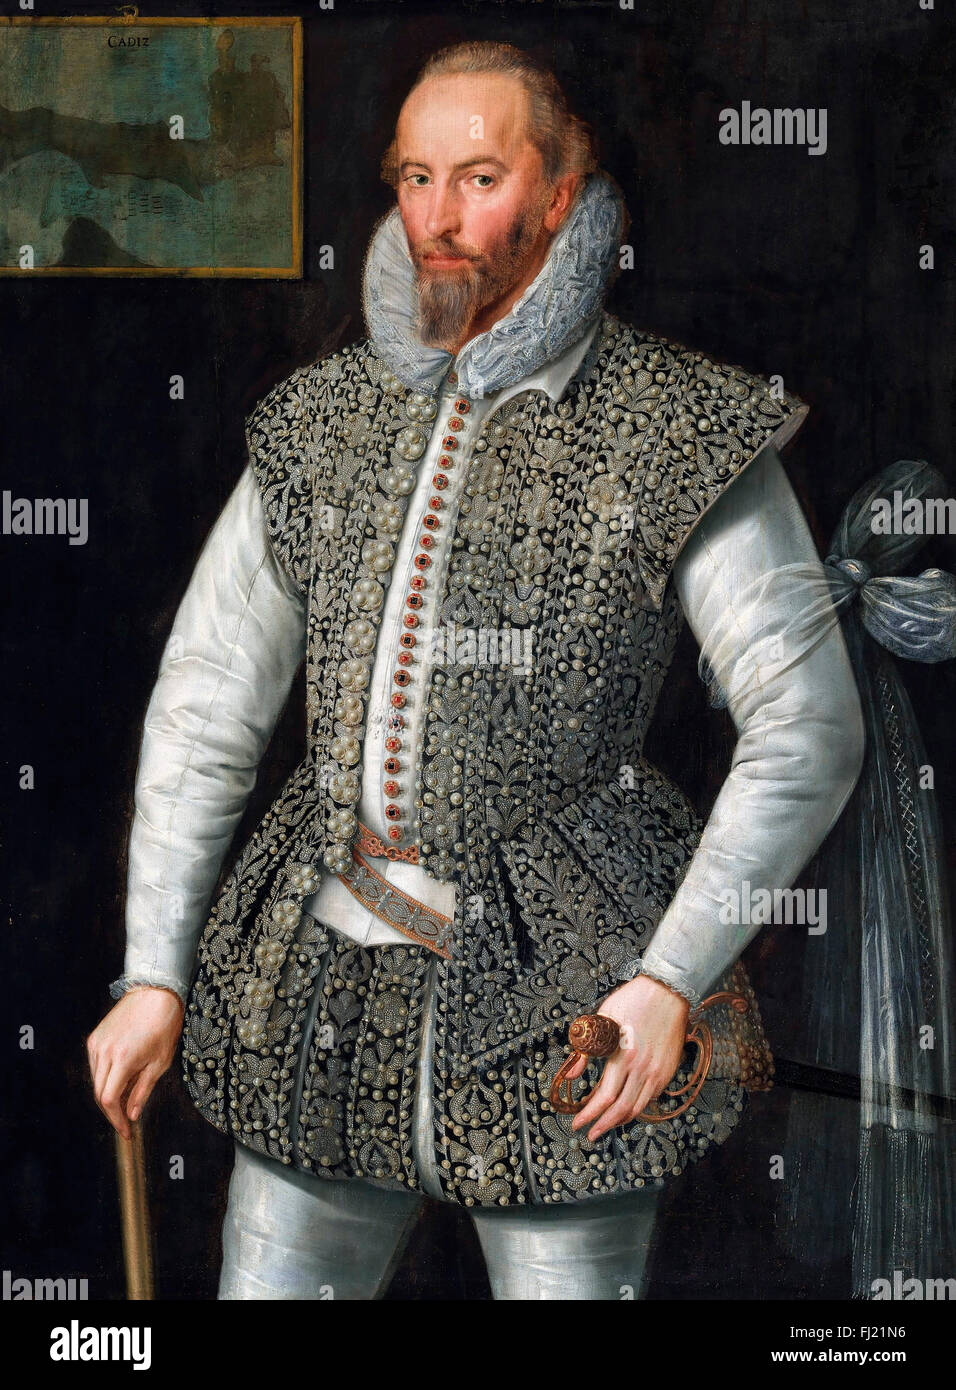 Sir Walter Raleigh (c.1554-1618). Portrait of the Elizabethan poet, explorer, soldier and sailor, painted in 1598 - Stock Image